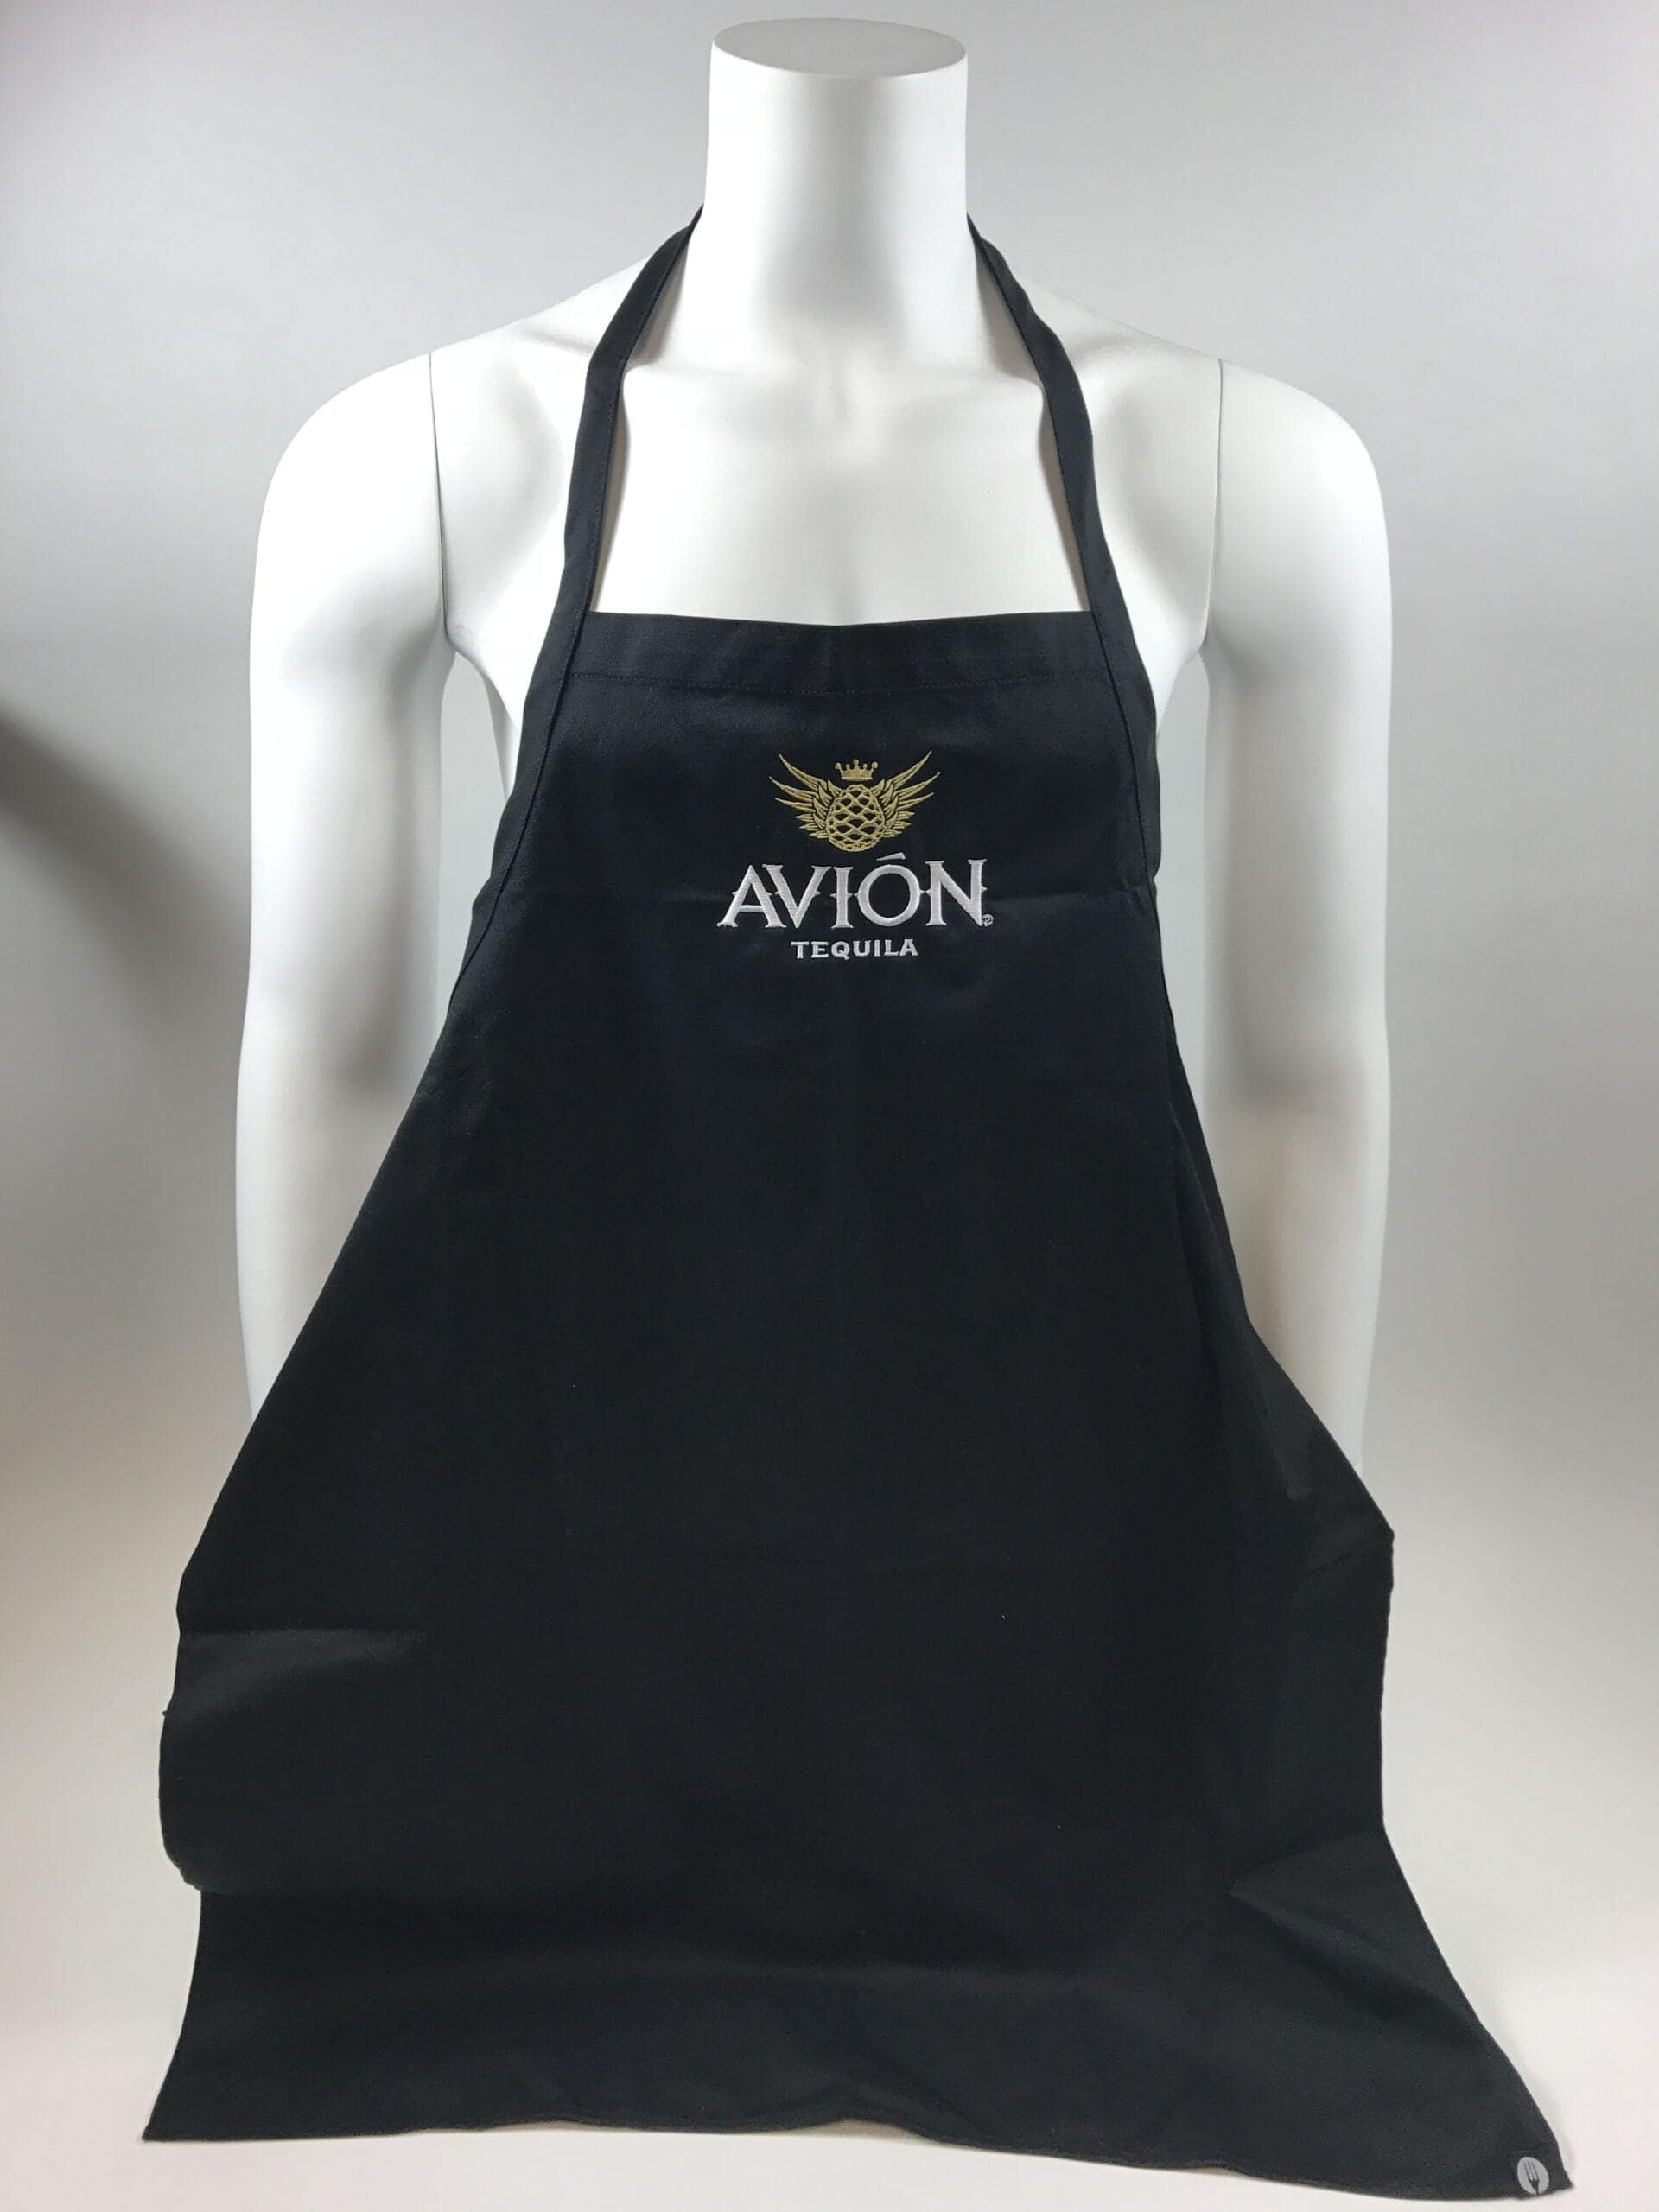 Using every available merchandising platform, is an important business strategy. Adding a custom embroidered apron to your custom designed employee uniform creates an opportunity for branding to be unified across all available platforms.